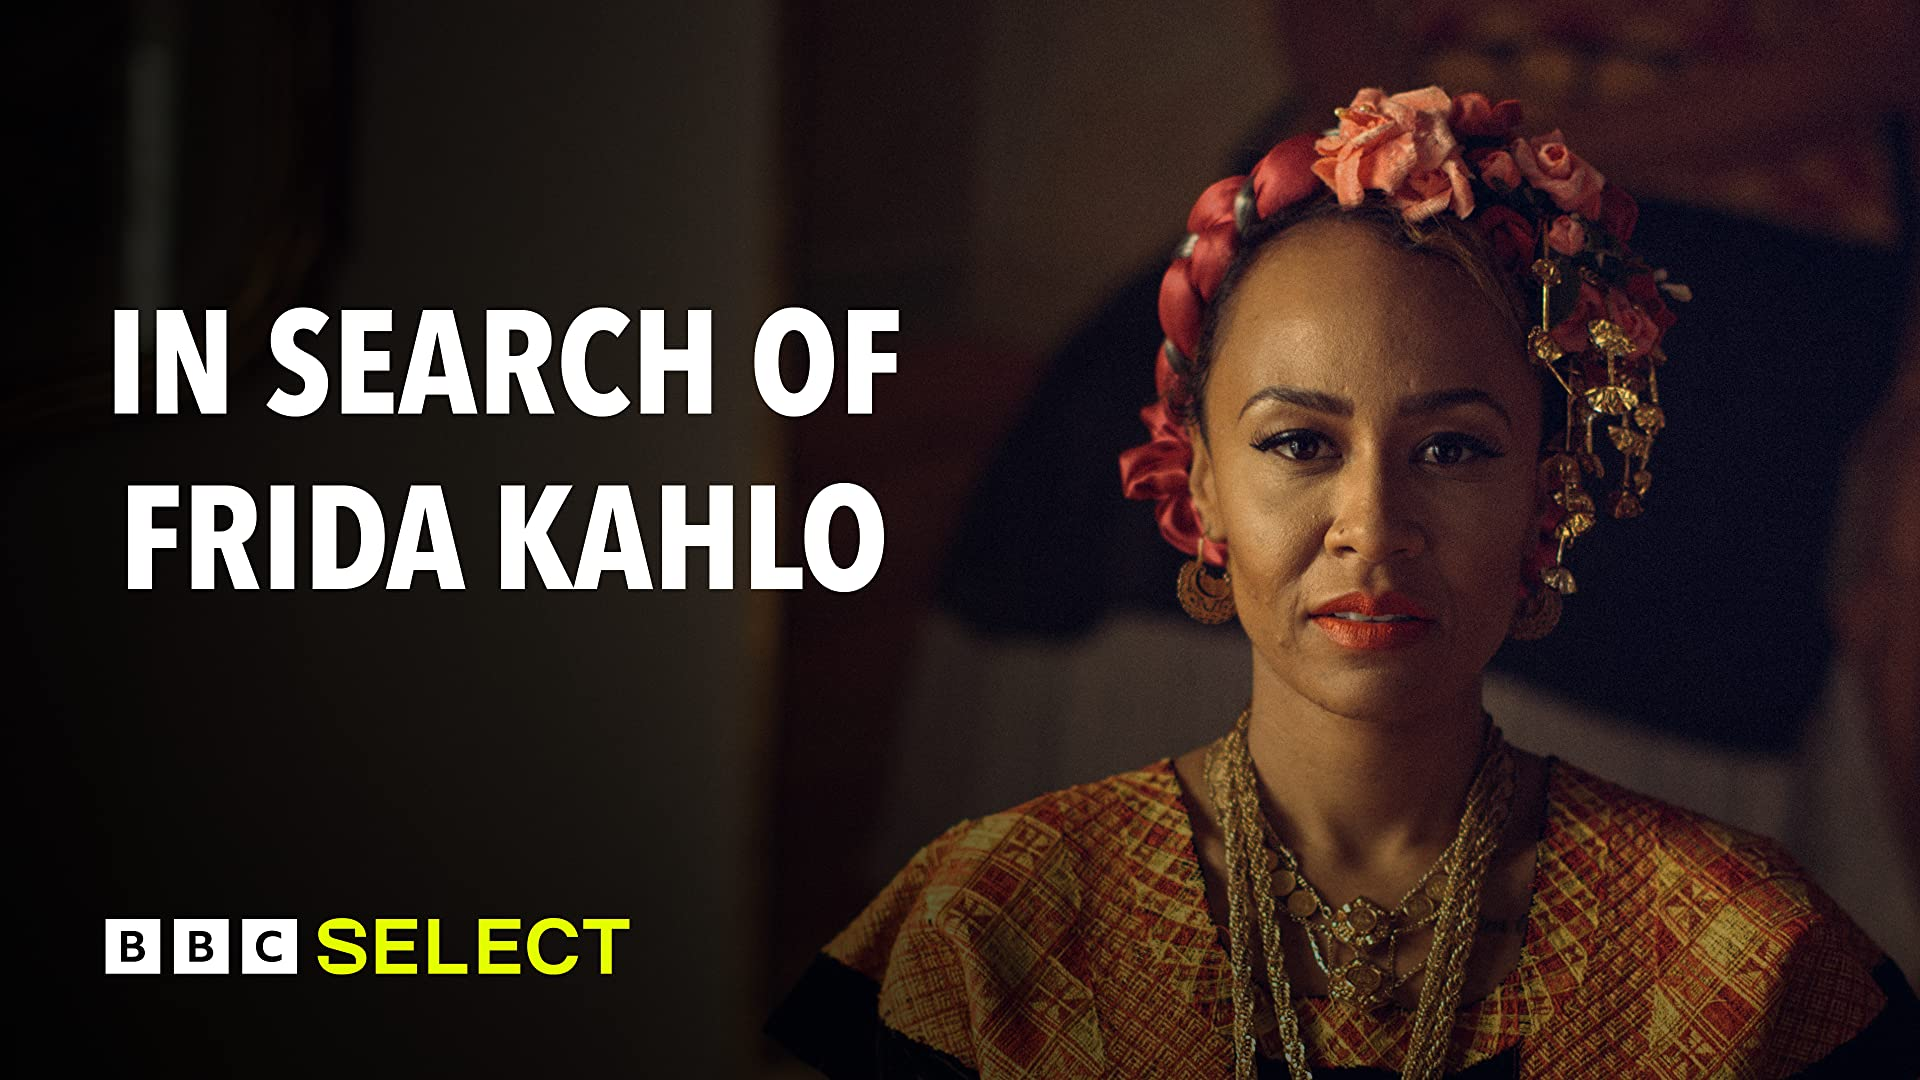 In Search of Frida Kahlo